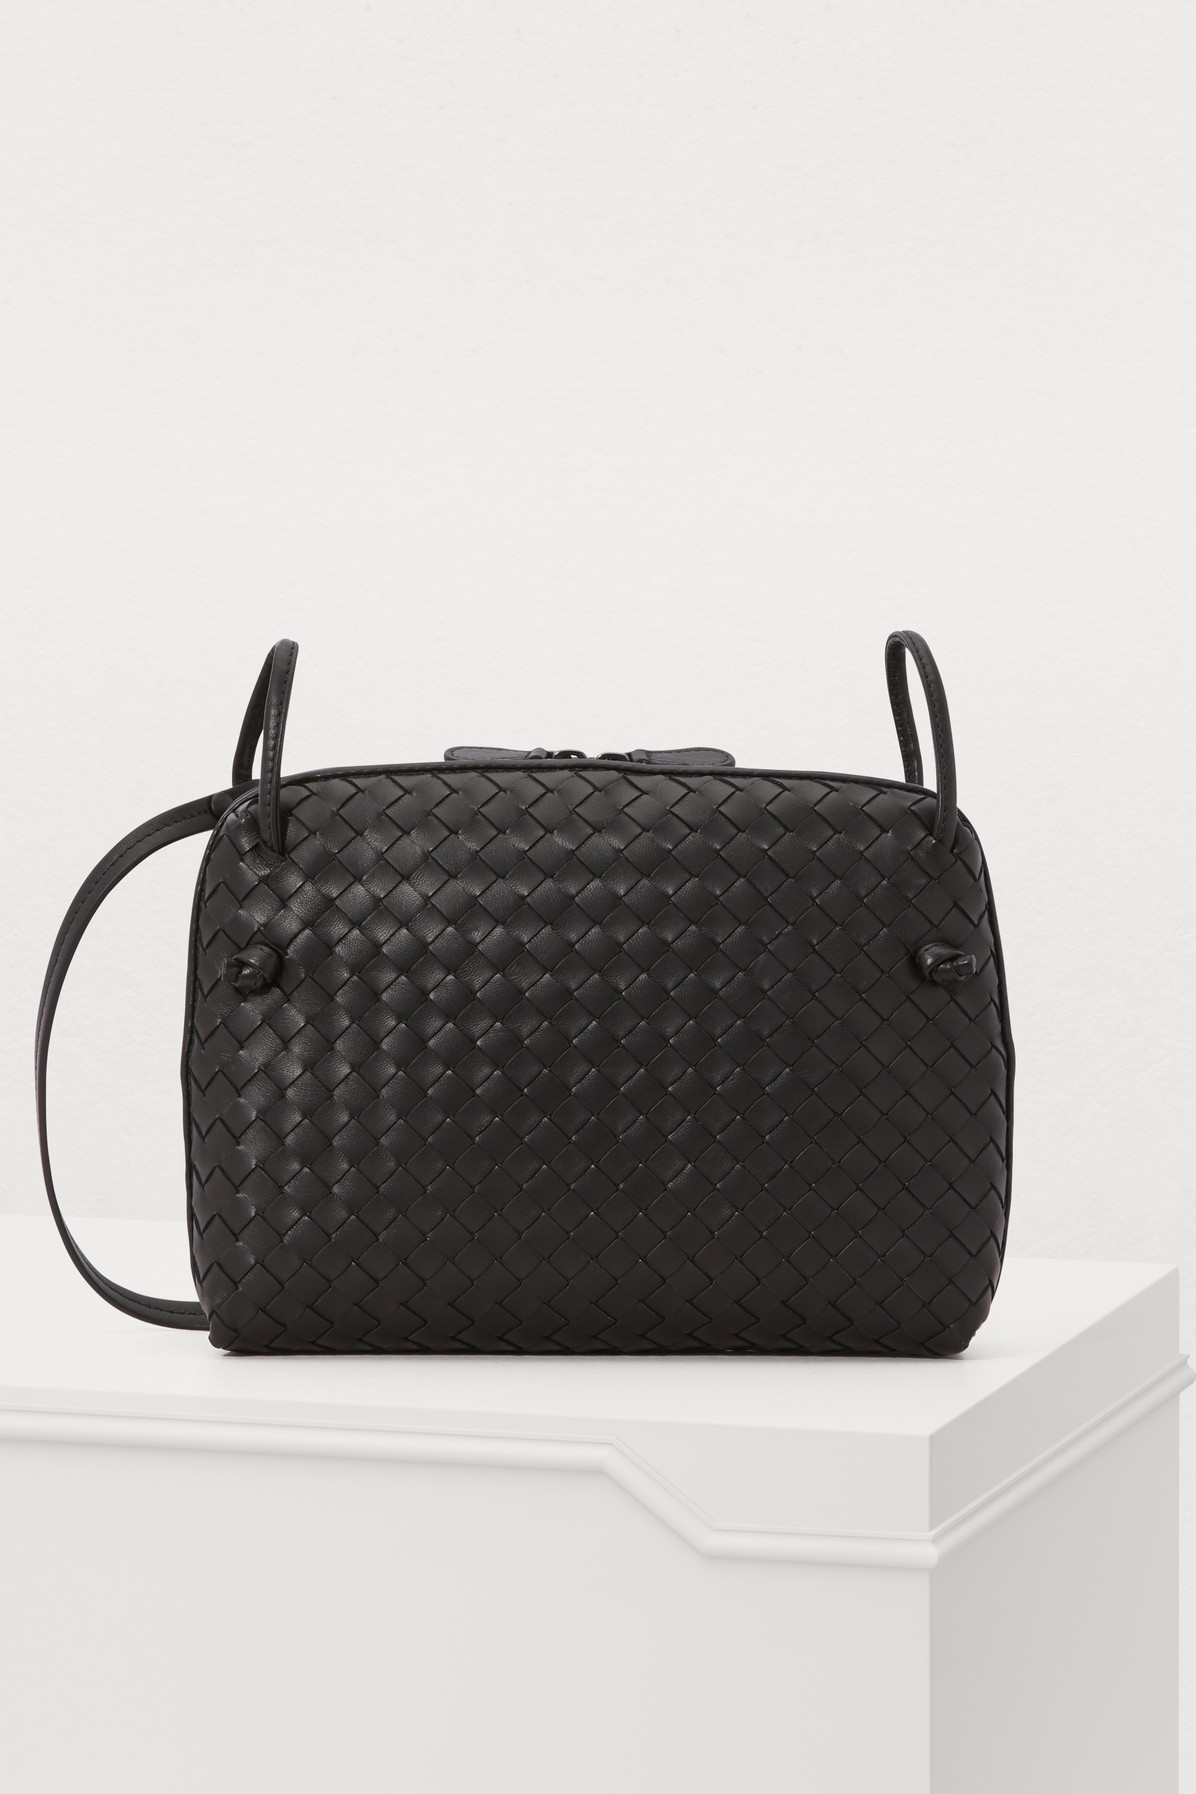 5203a40a33eb Bottega Veneta Nodini Intrecciato Leather Cross-Body Bag In Black ...